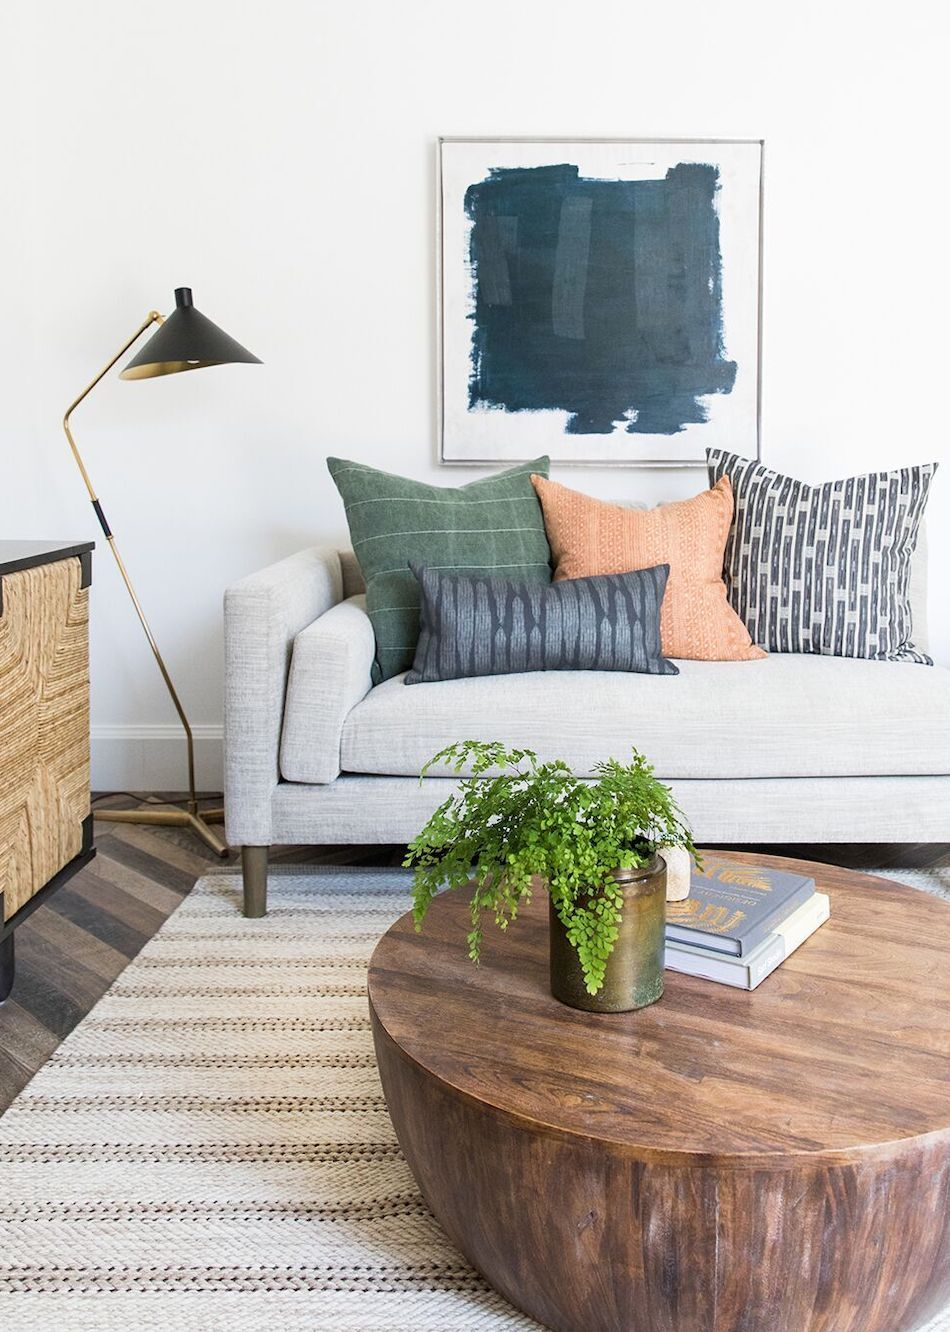 10 Types Of Floor Lamps To Consider Before Buying